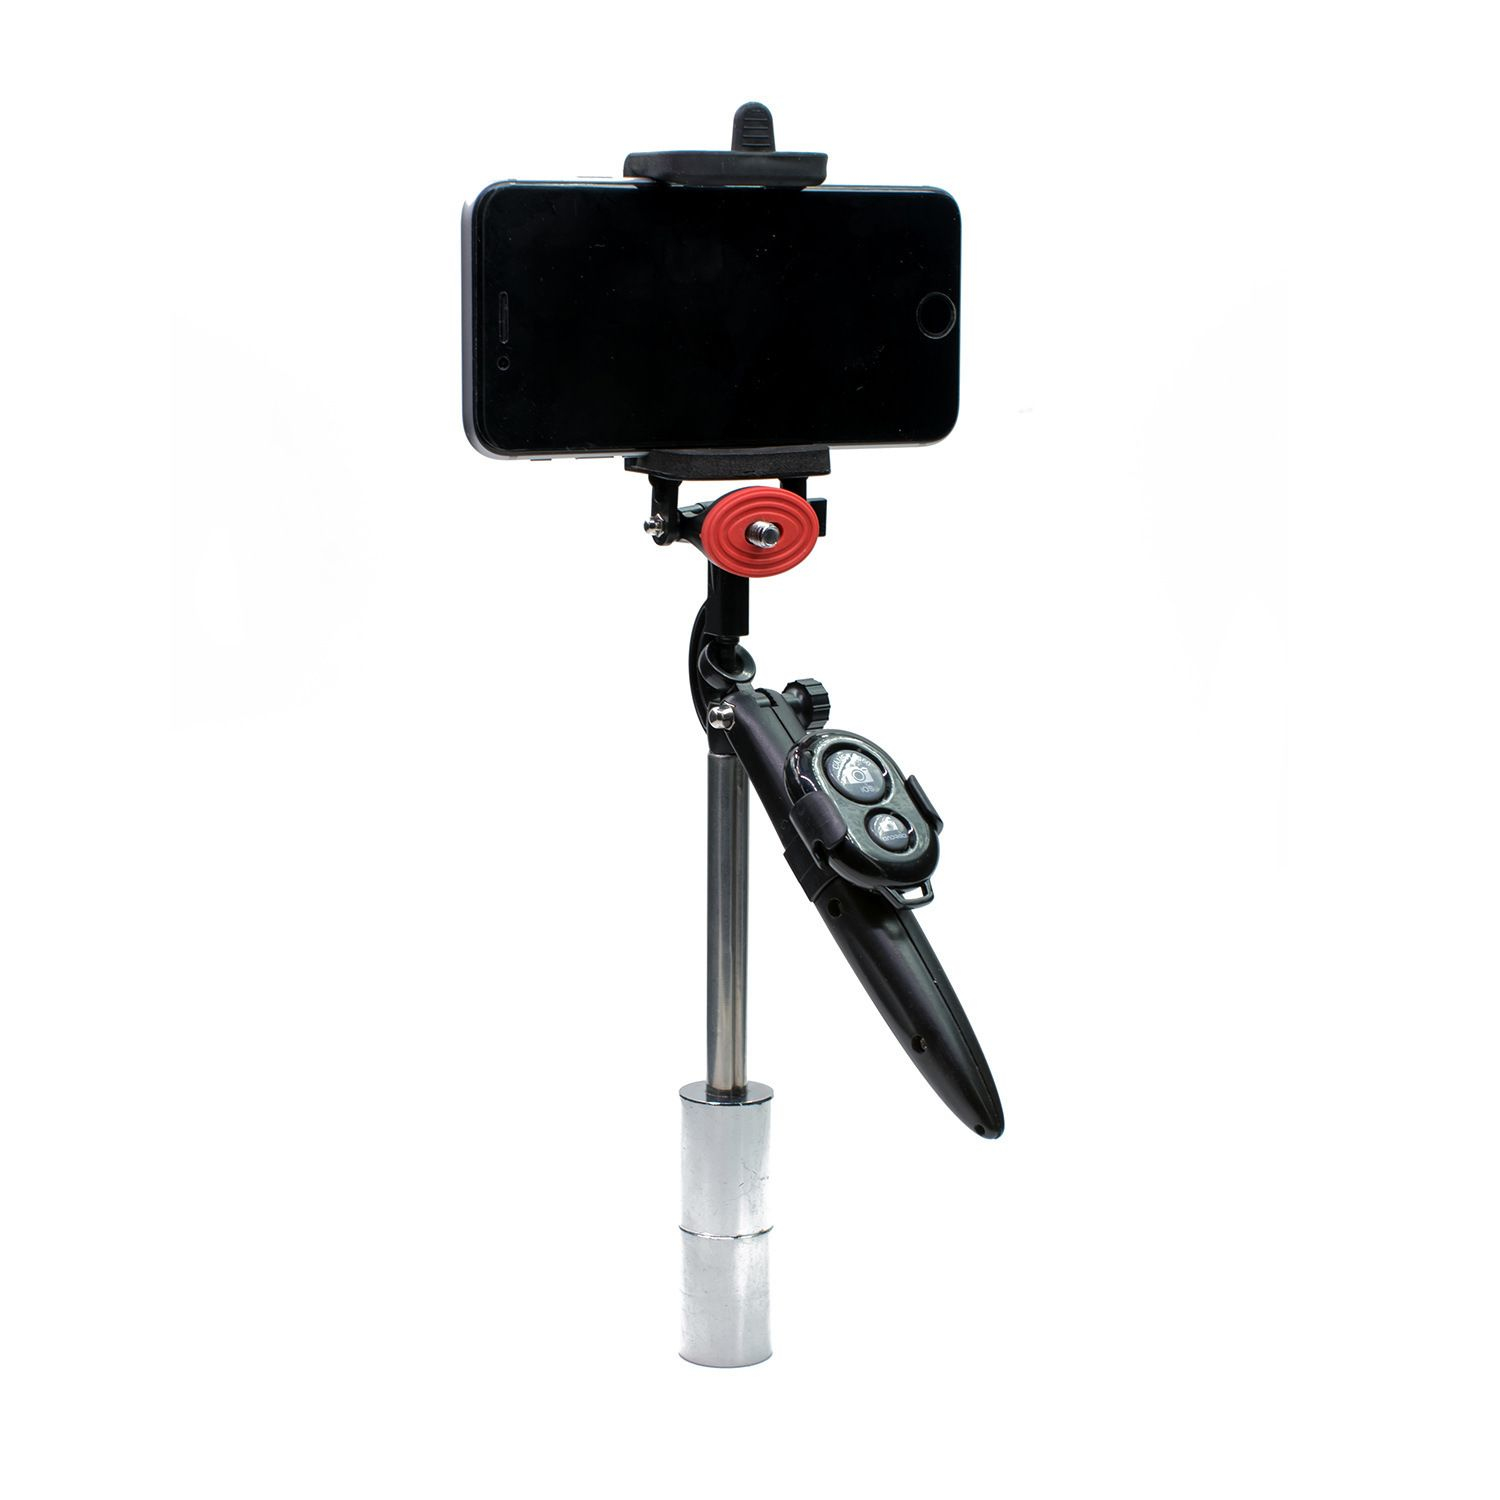 Universal steadicam for Smart phone, Gopro, Action camera